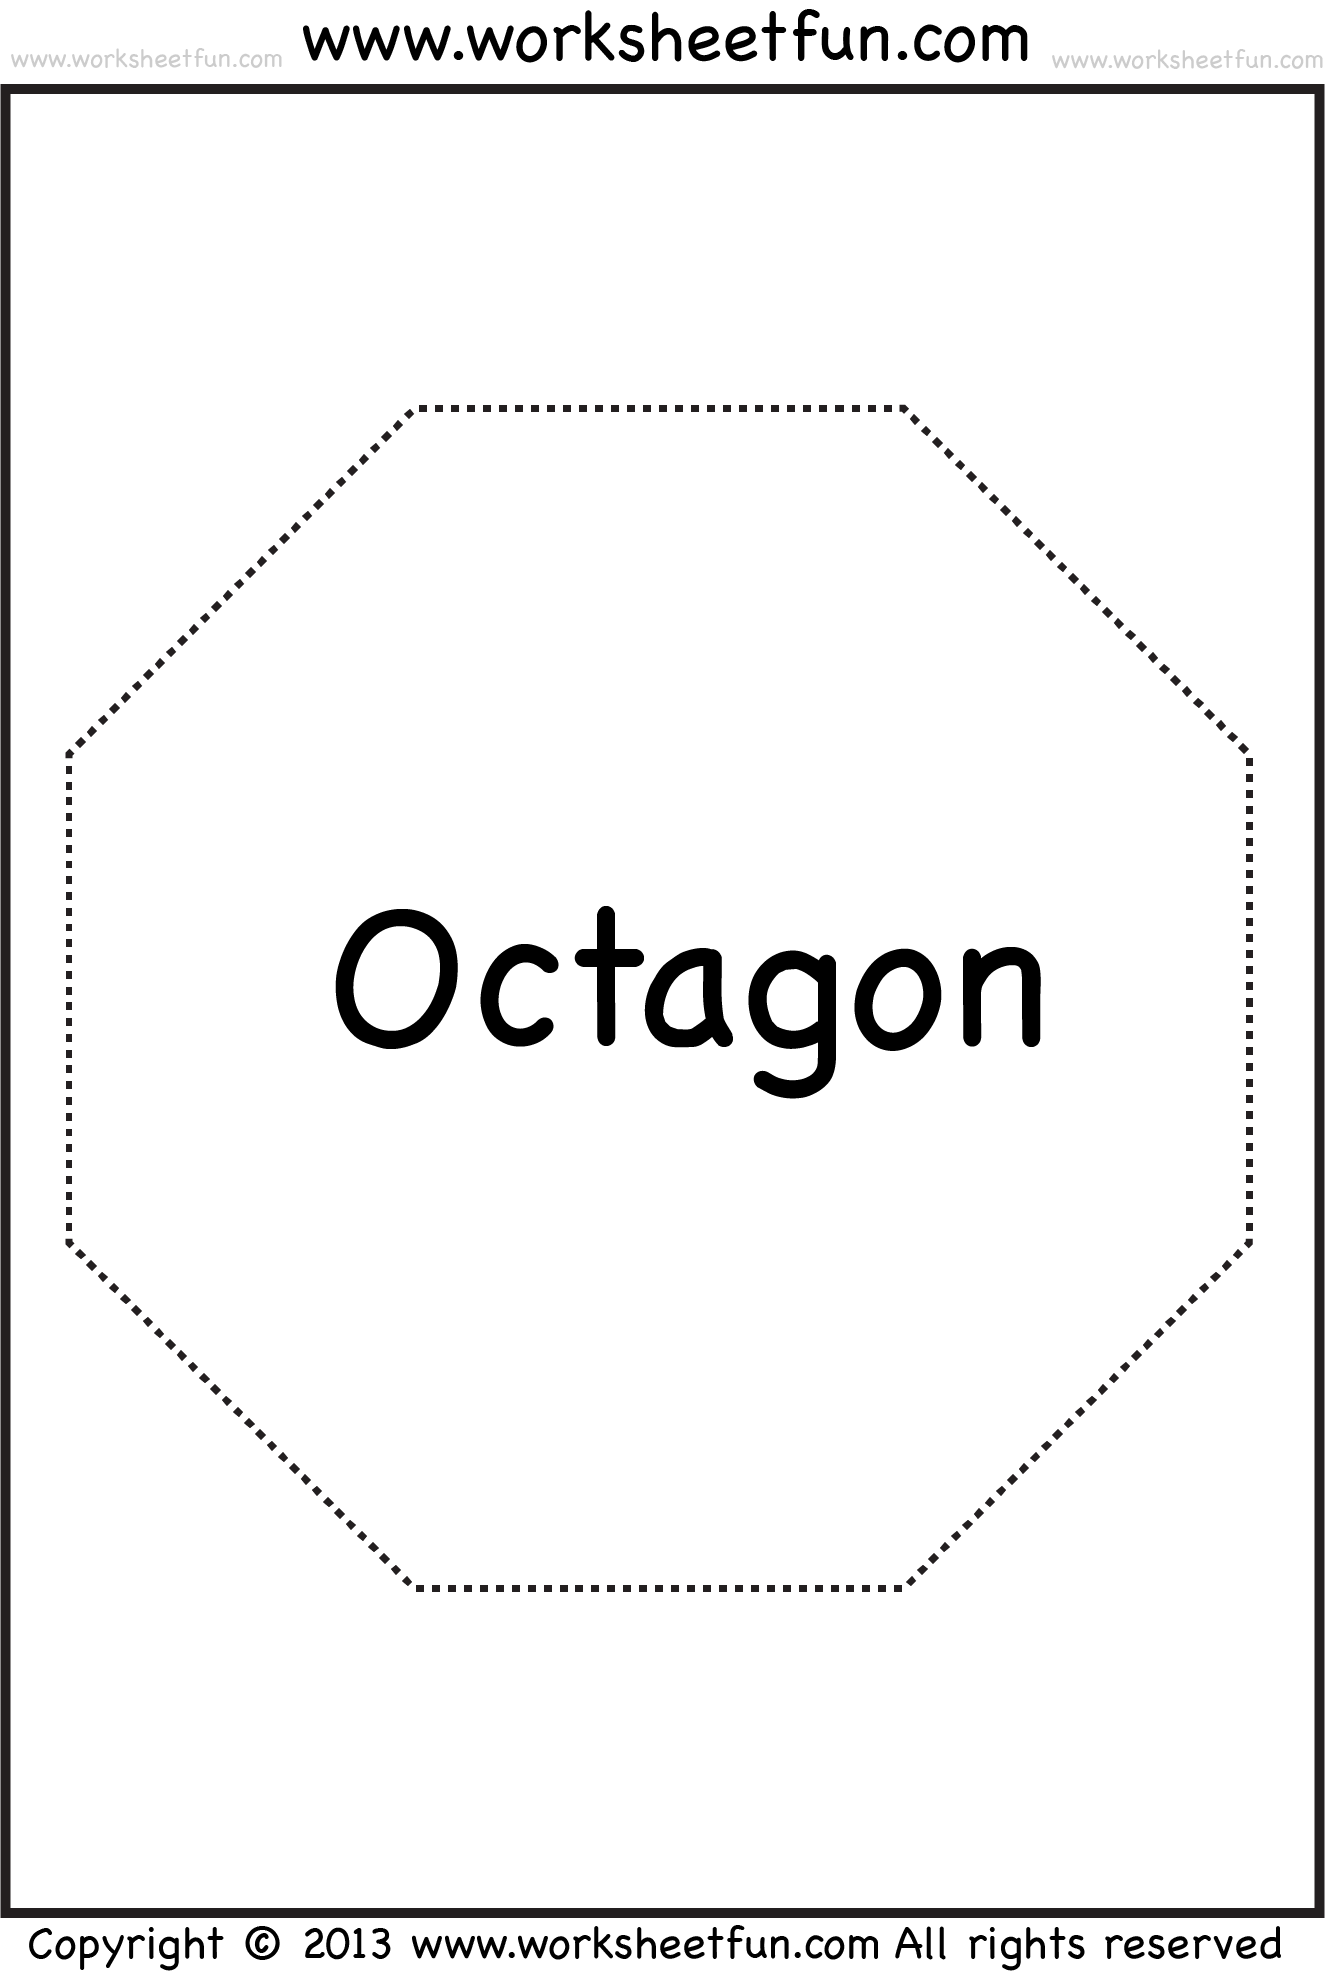 Octagon math pinterest worksheets shapes worksheets and octagon pronofoot35fo Choice Image